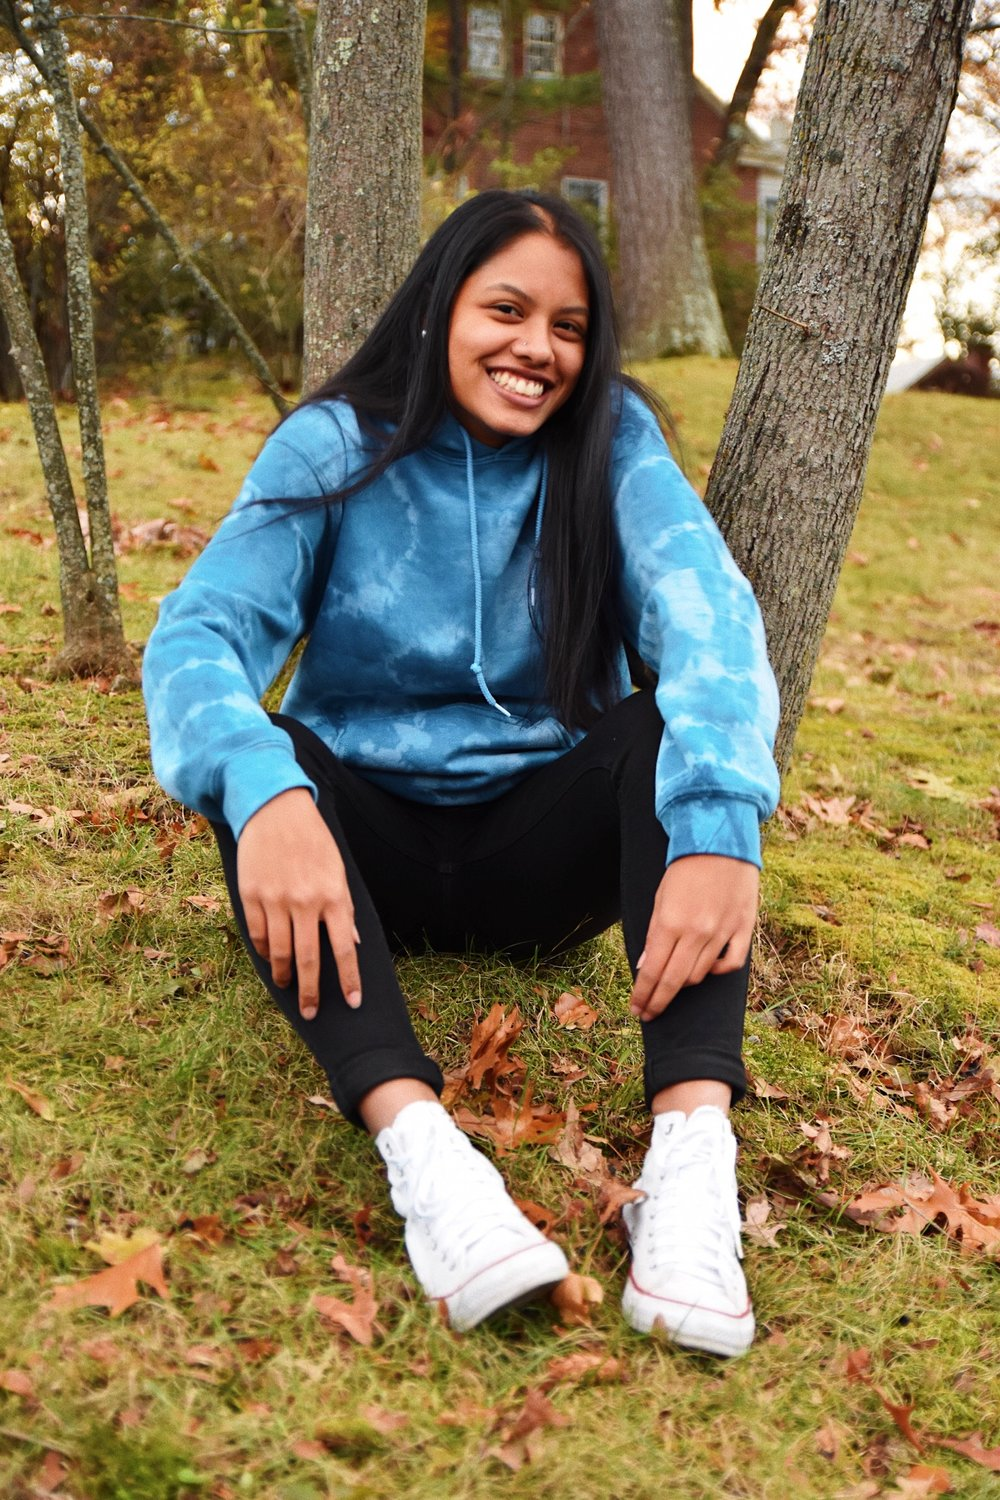 Sharon L. - Hi, I'm Sharon, and I'm currently a sophomore at the Commonwealth Honors College @ UMass Amherst. I'm studying Public Health and hope to start my own nonprofit one day. I love Indigo and it's uniqueness.